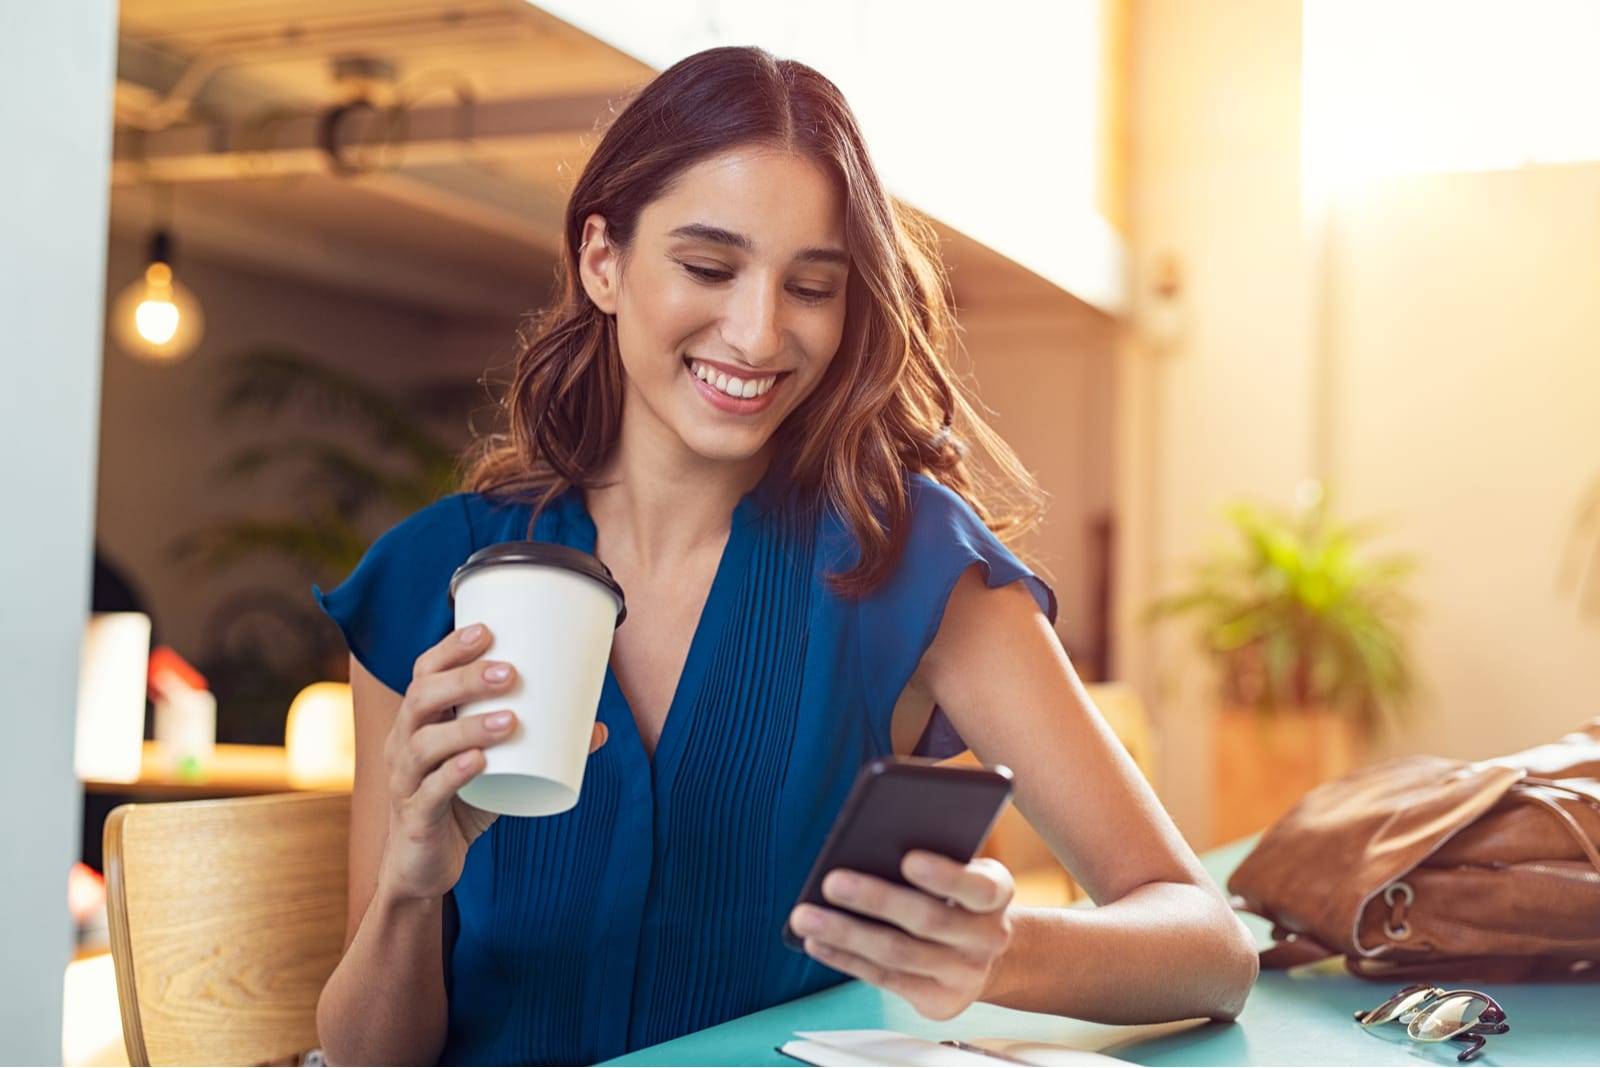 woman sitting drinking coffee and key on the phone